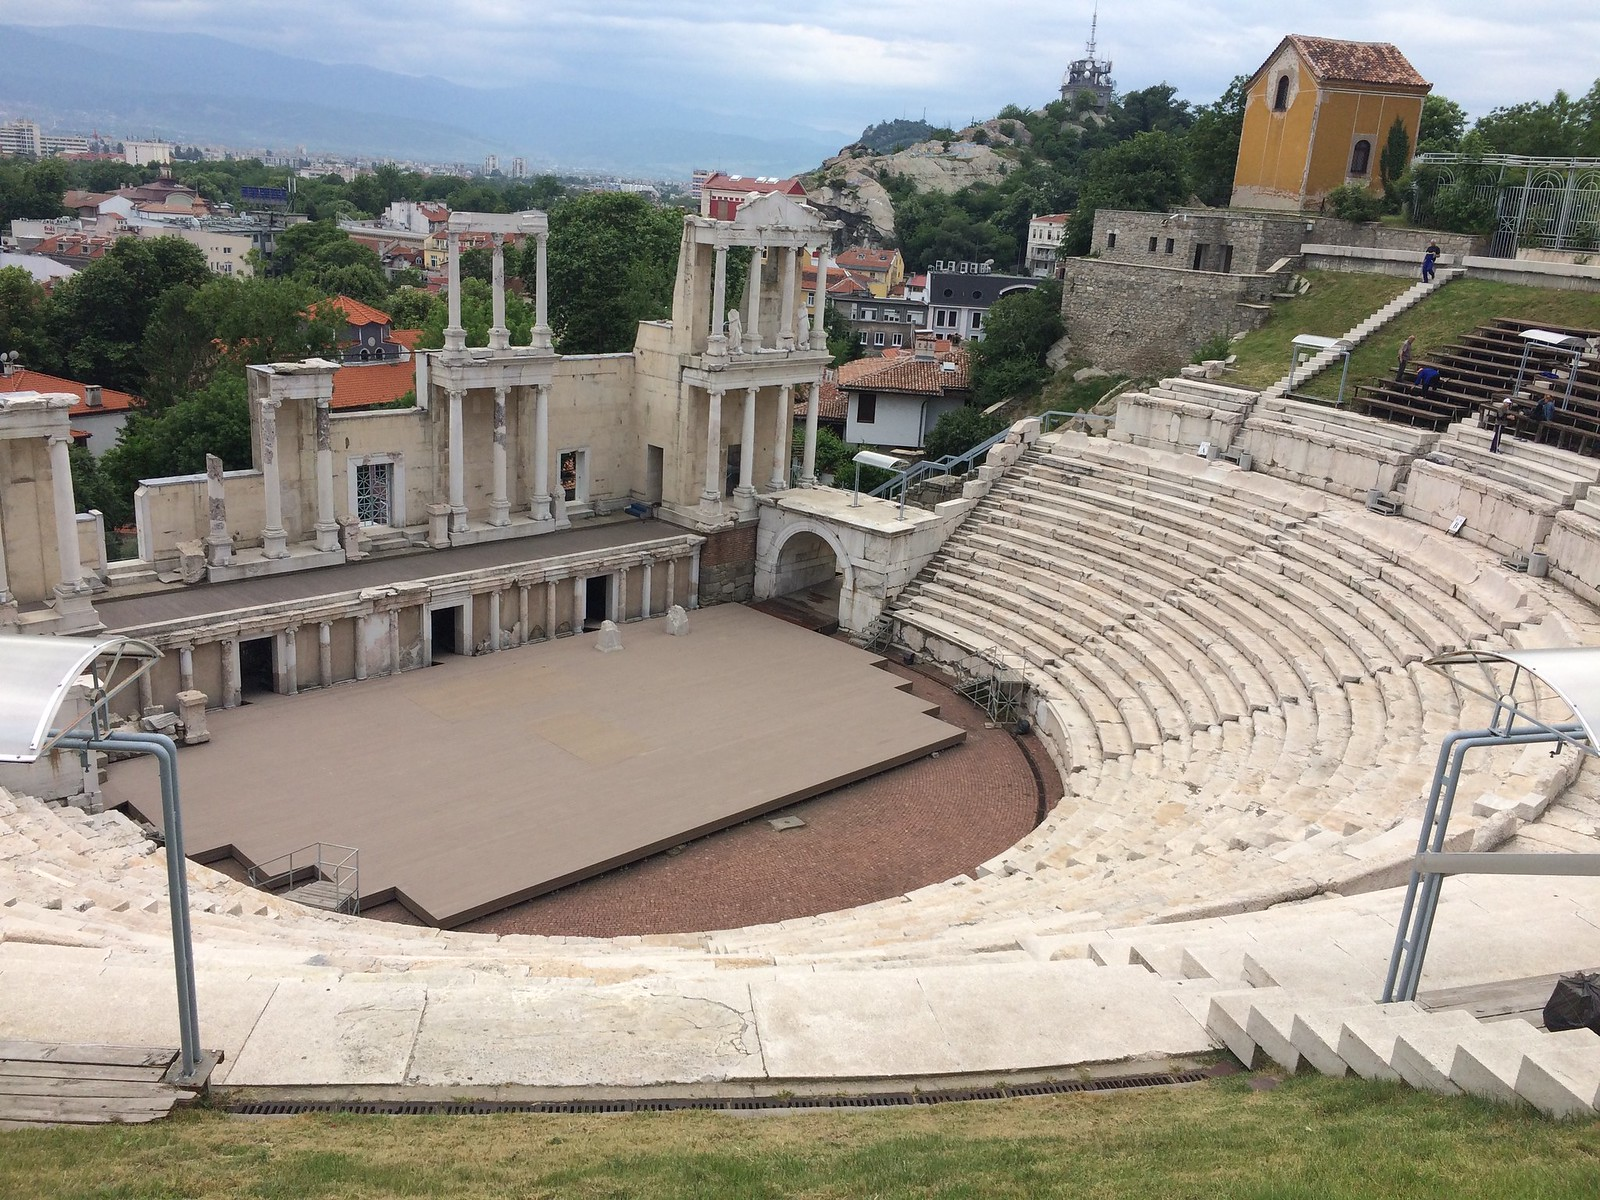 201705 - Balkans - Ancient Roman Theater - 8 of 89 - Plovdiv - Hadji Hasan Mahala - Plovdiv, May 22, 2017